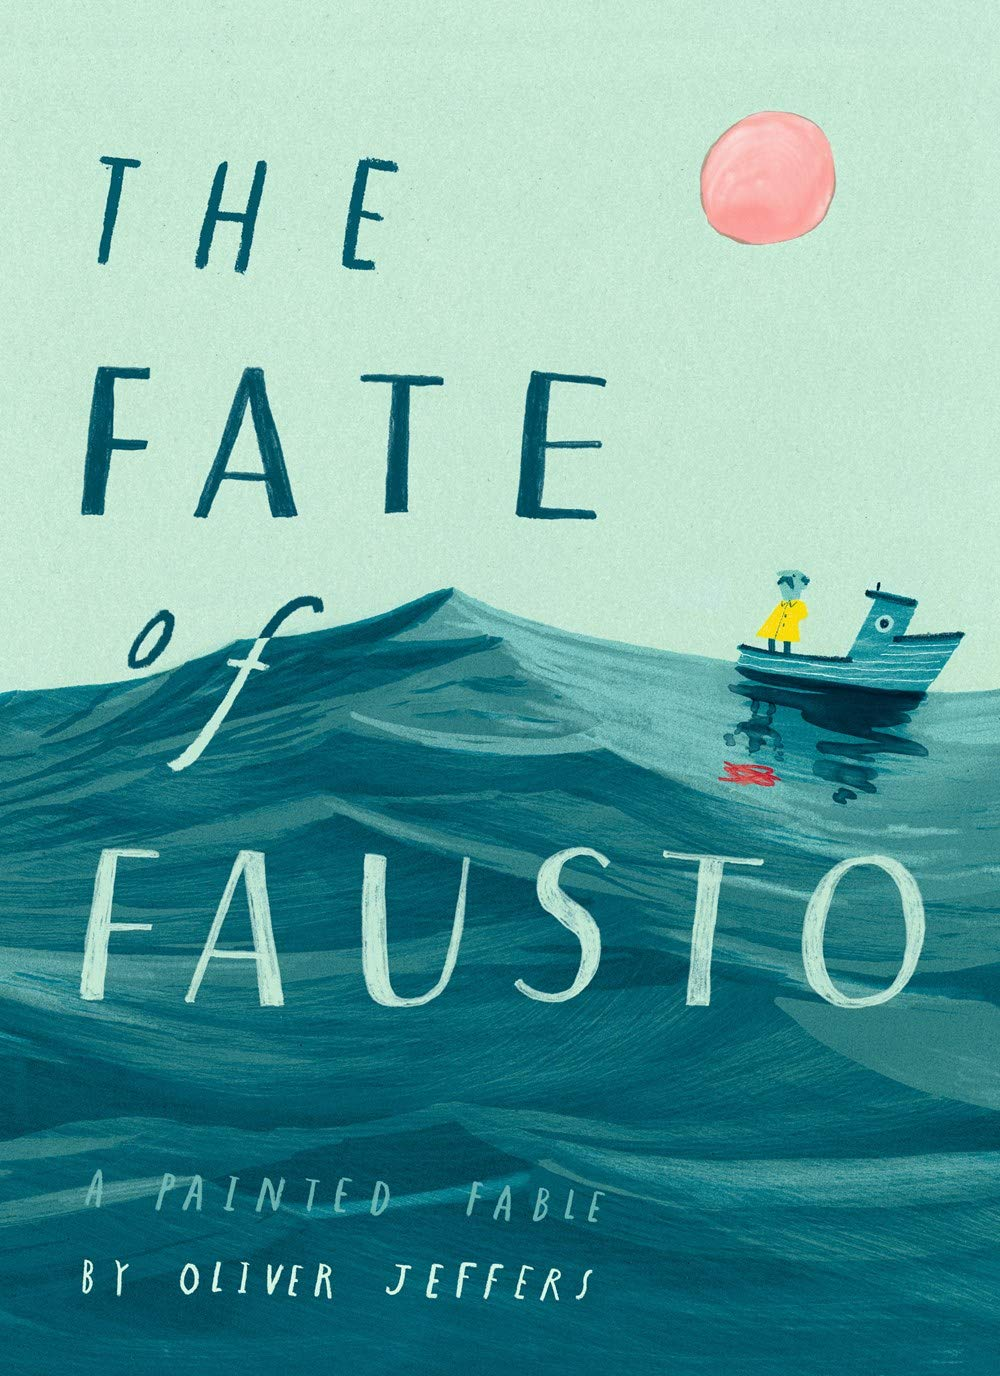 The Fate of Fausto: Oliver Jeffers's Lovely Painted Fable About the Absurdity of Greed and the Existential Triumph of Enoughness, Inspired by Vonnegut